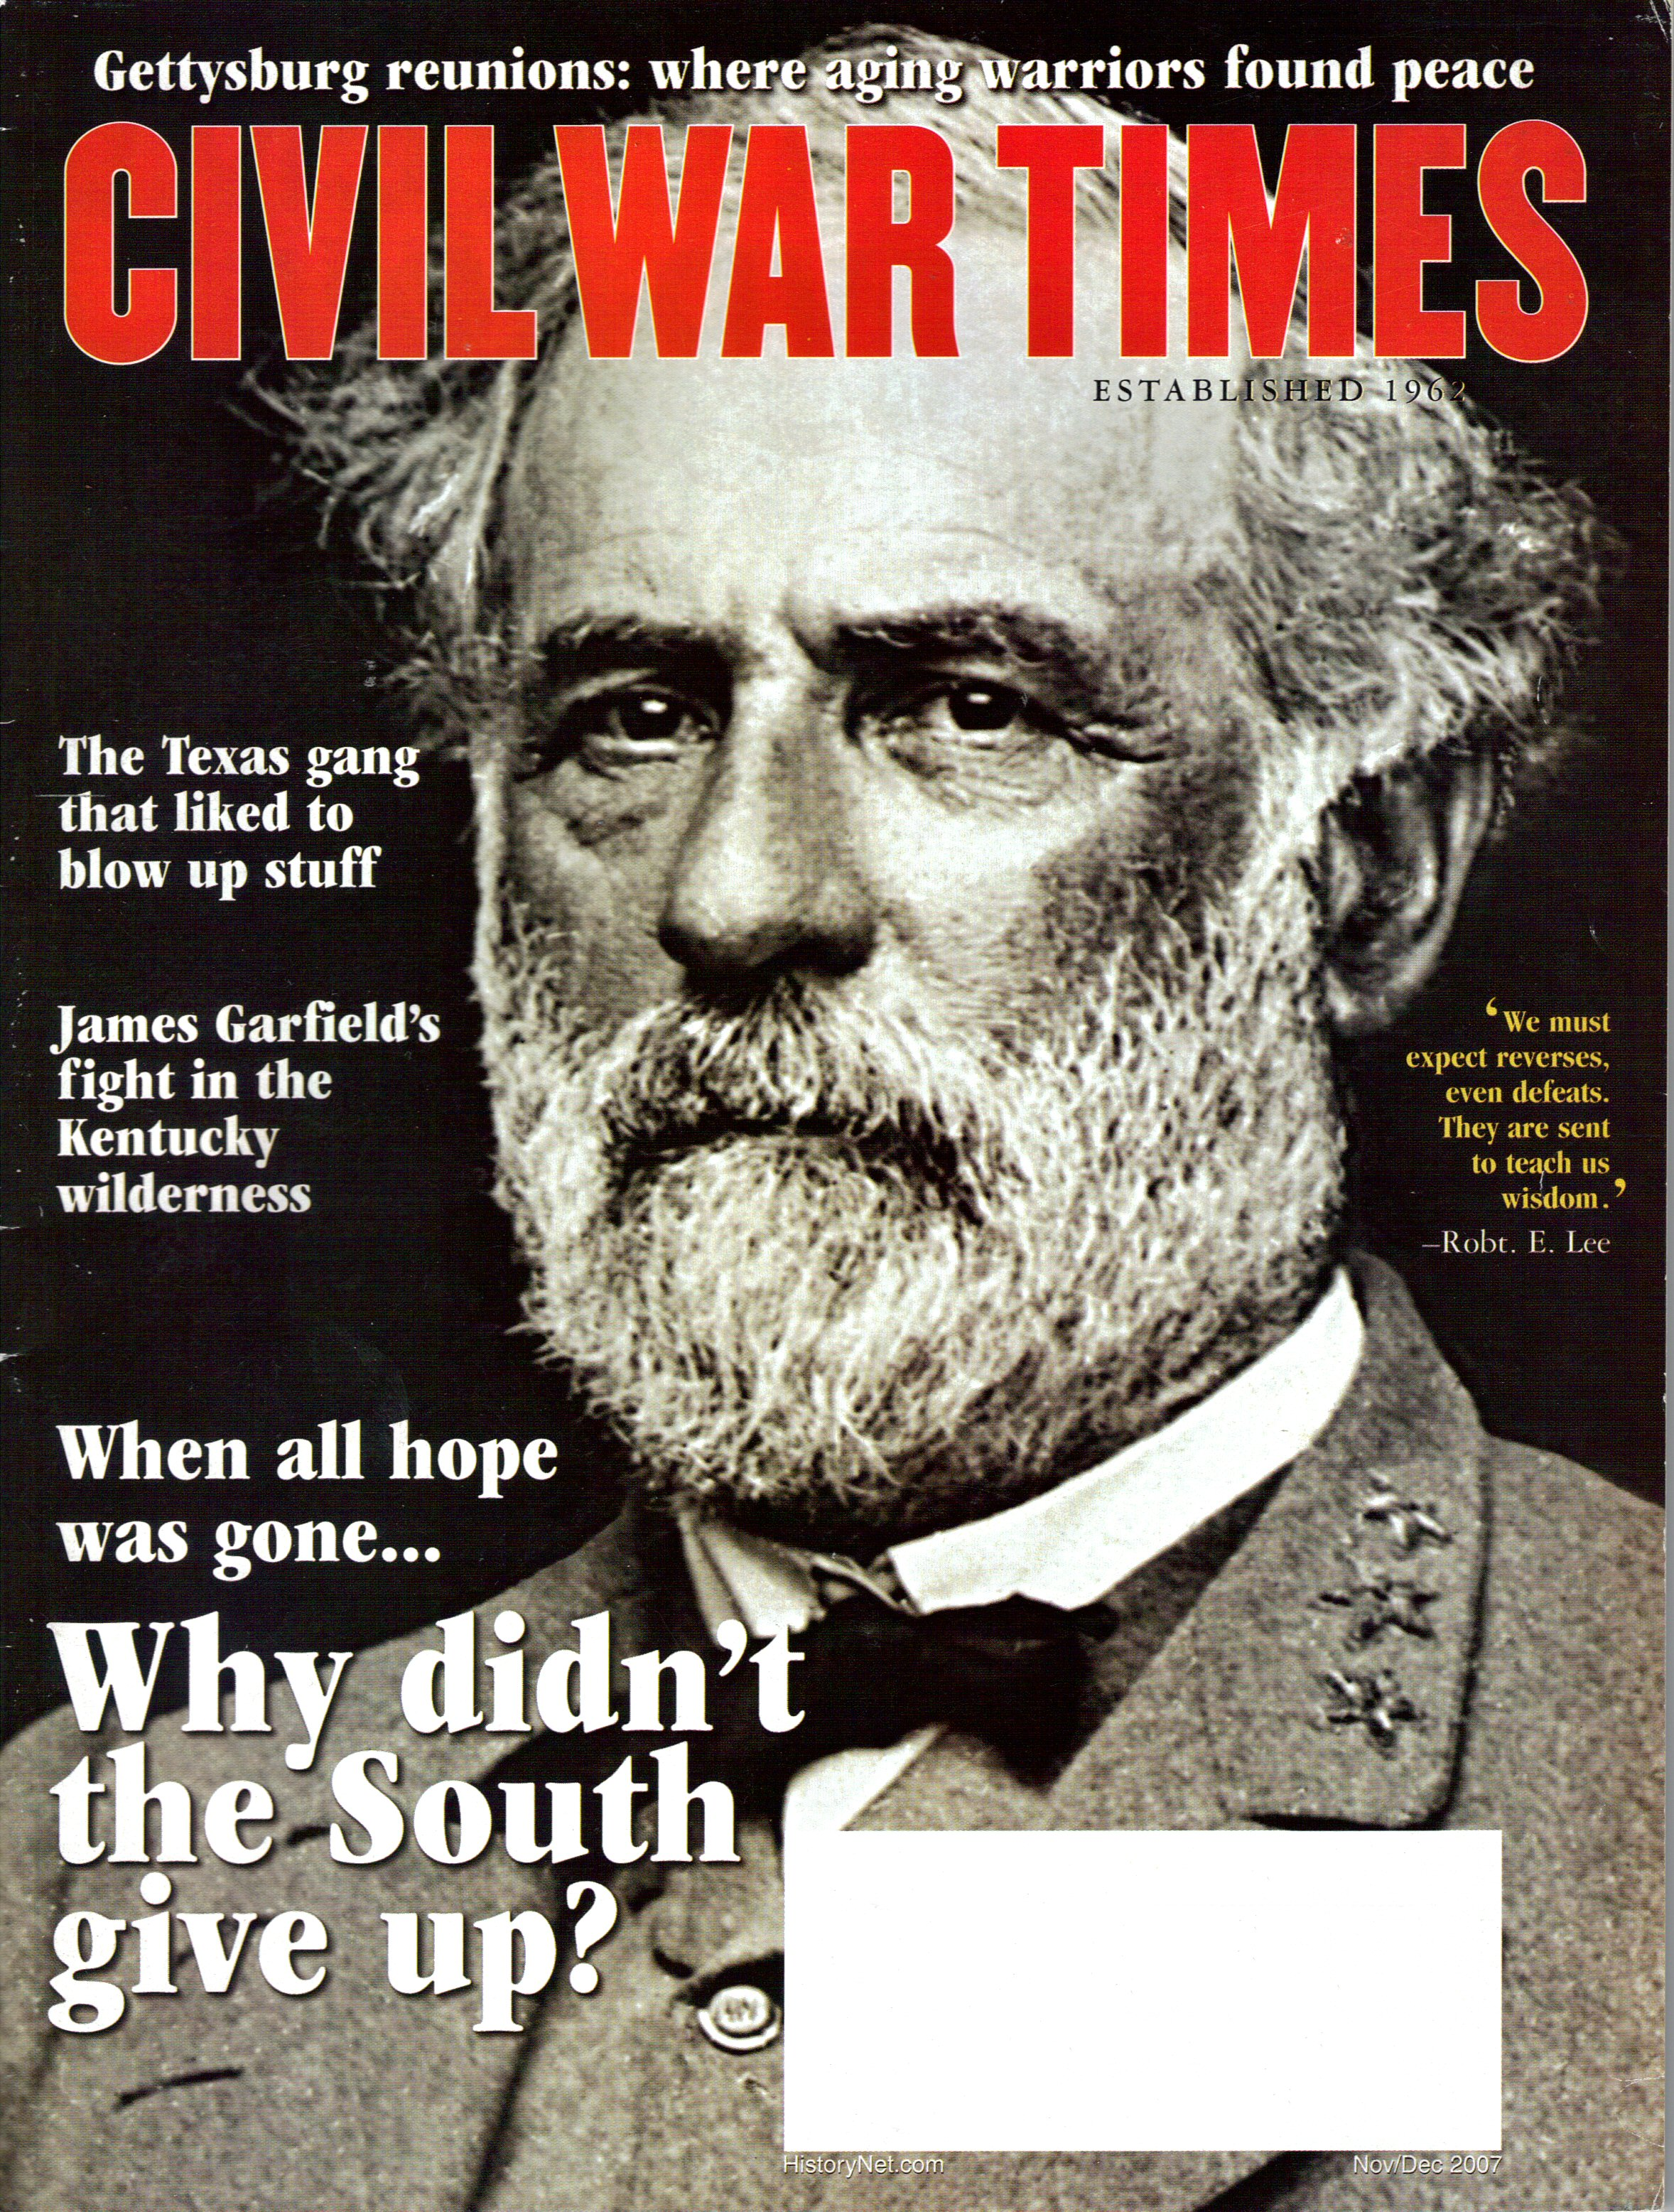 Civil War Times, Volume 46, Number 9 (November/December 2007)